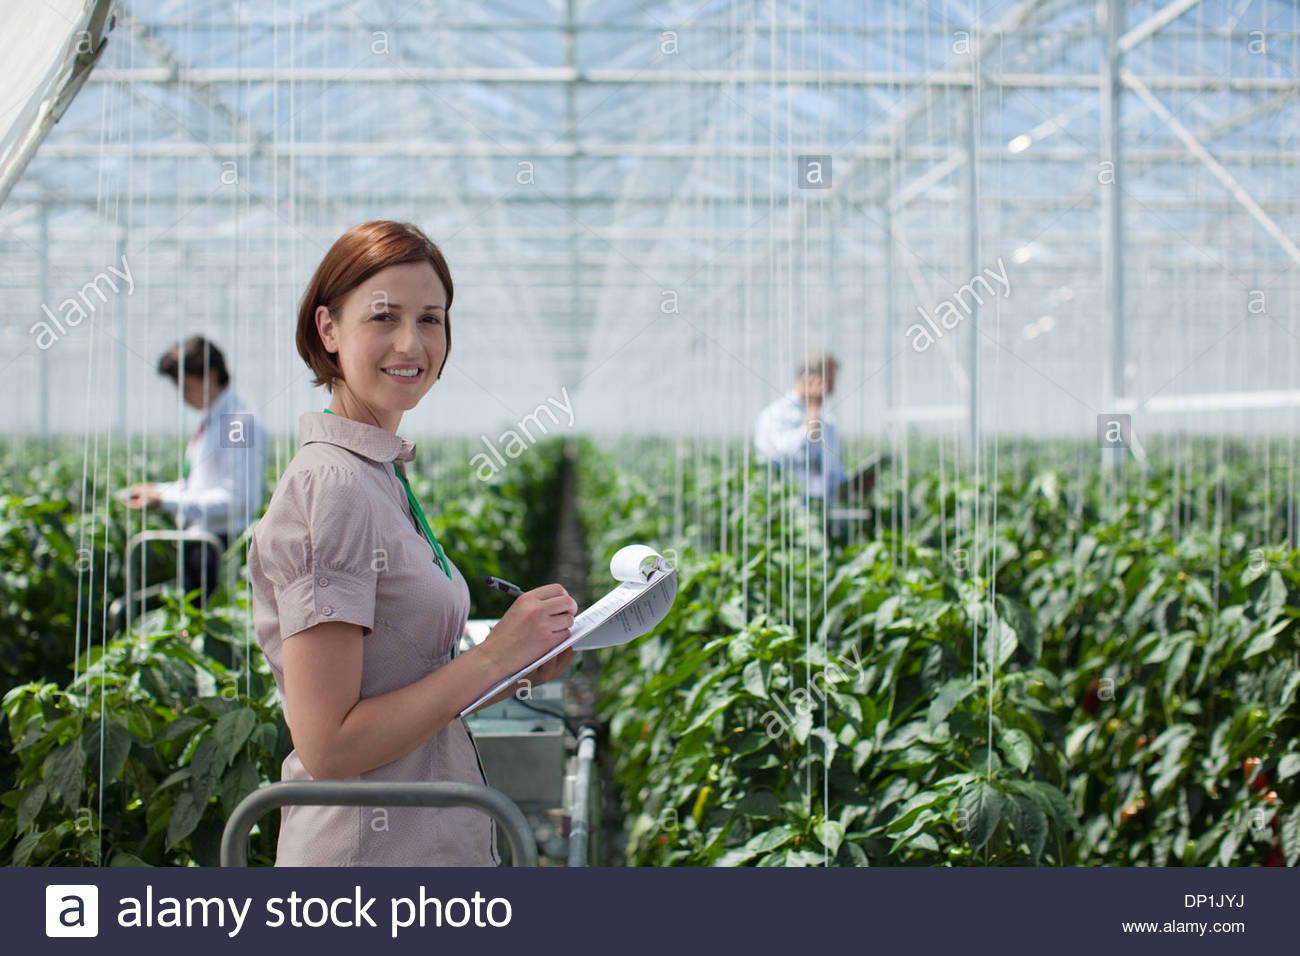 Woman writing on clipboard in greenhouse - Stock Image